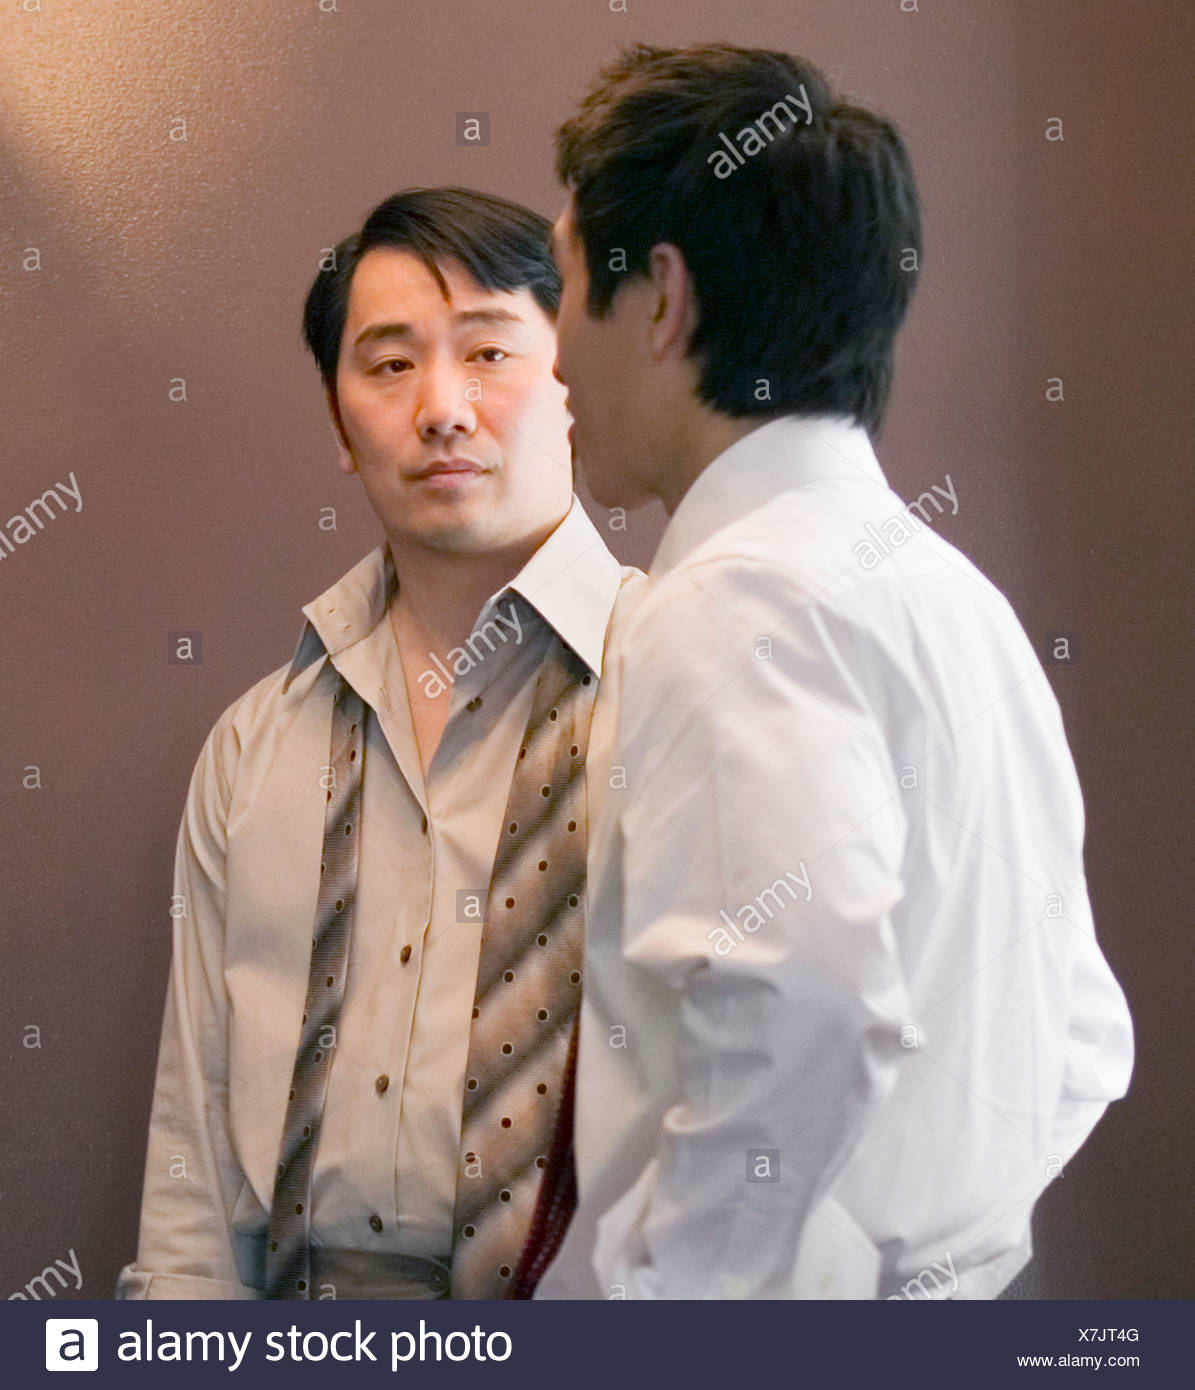 Asian businessman looking at coworker Photo Stock